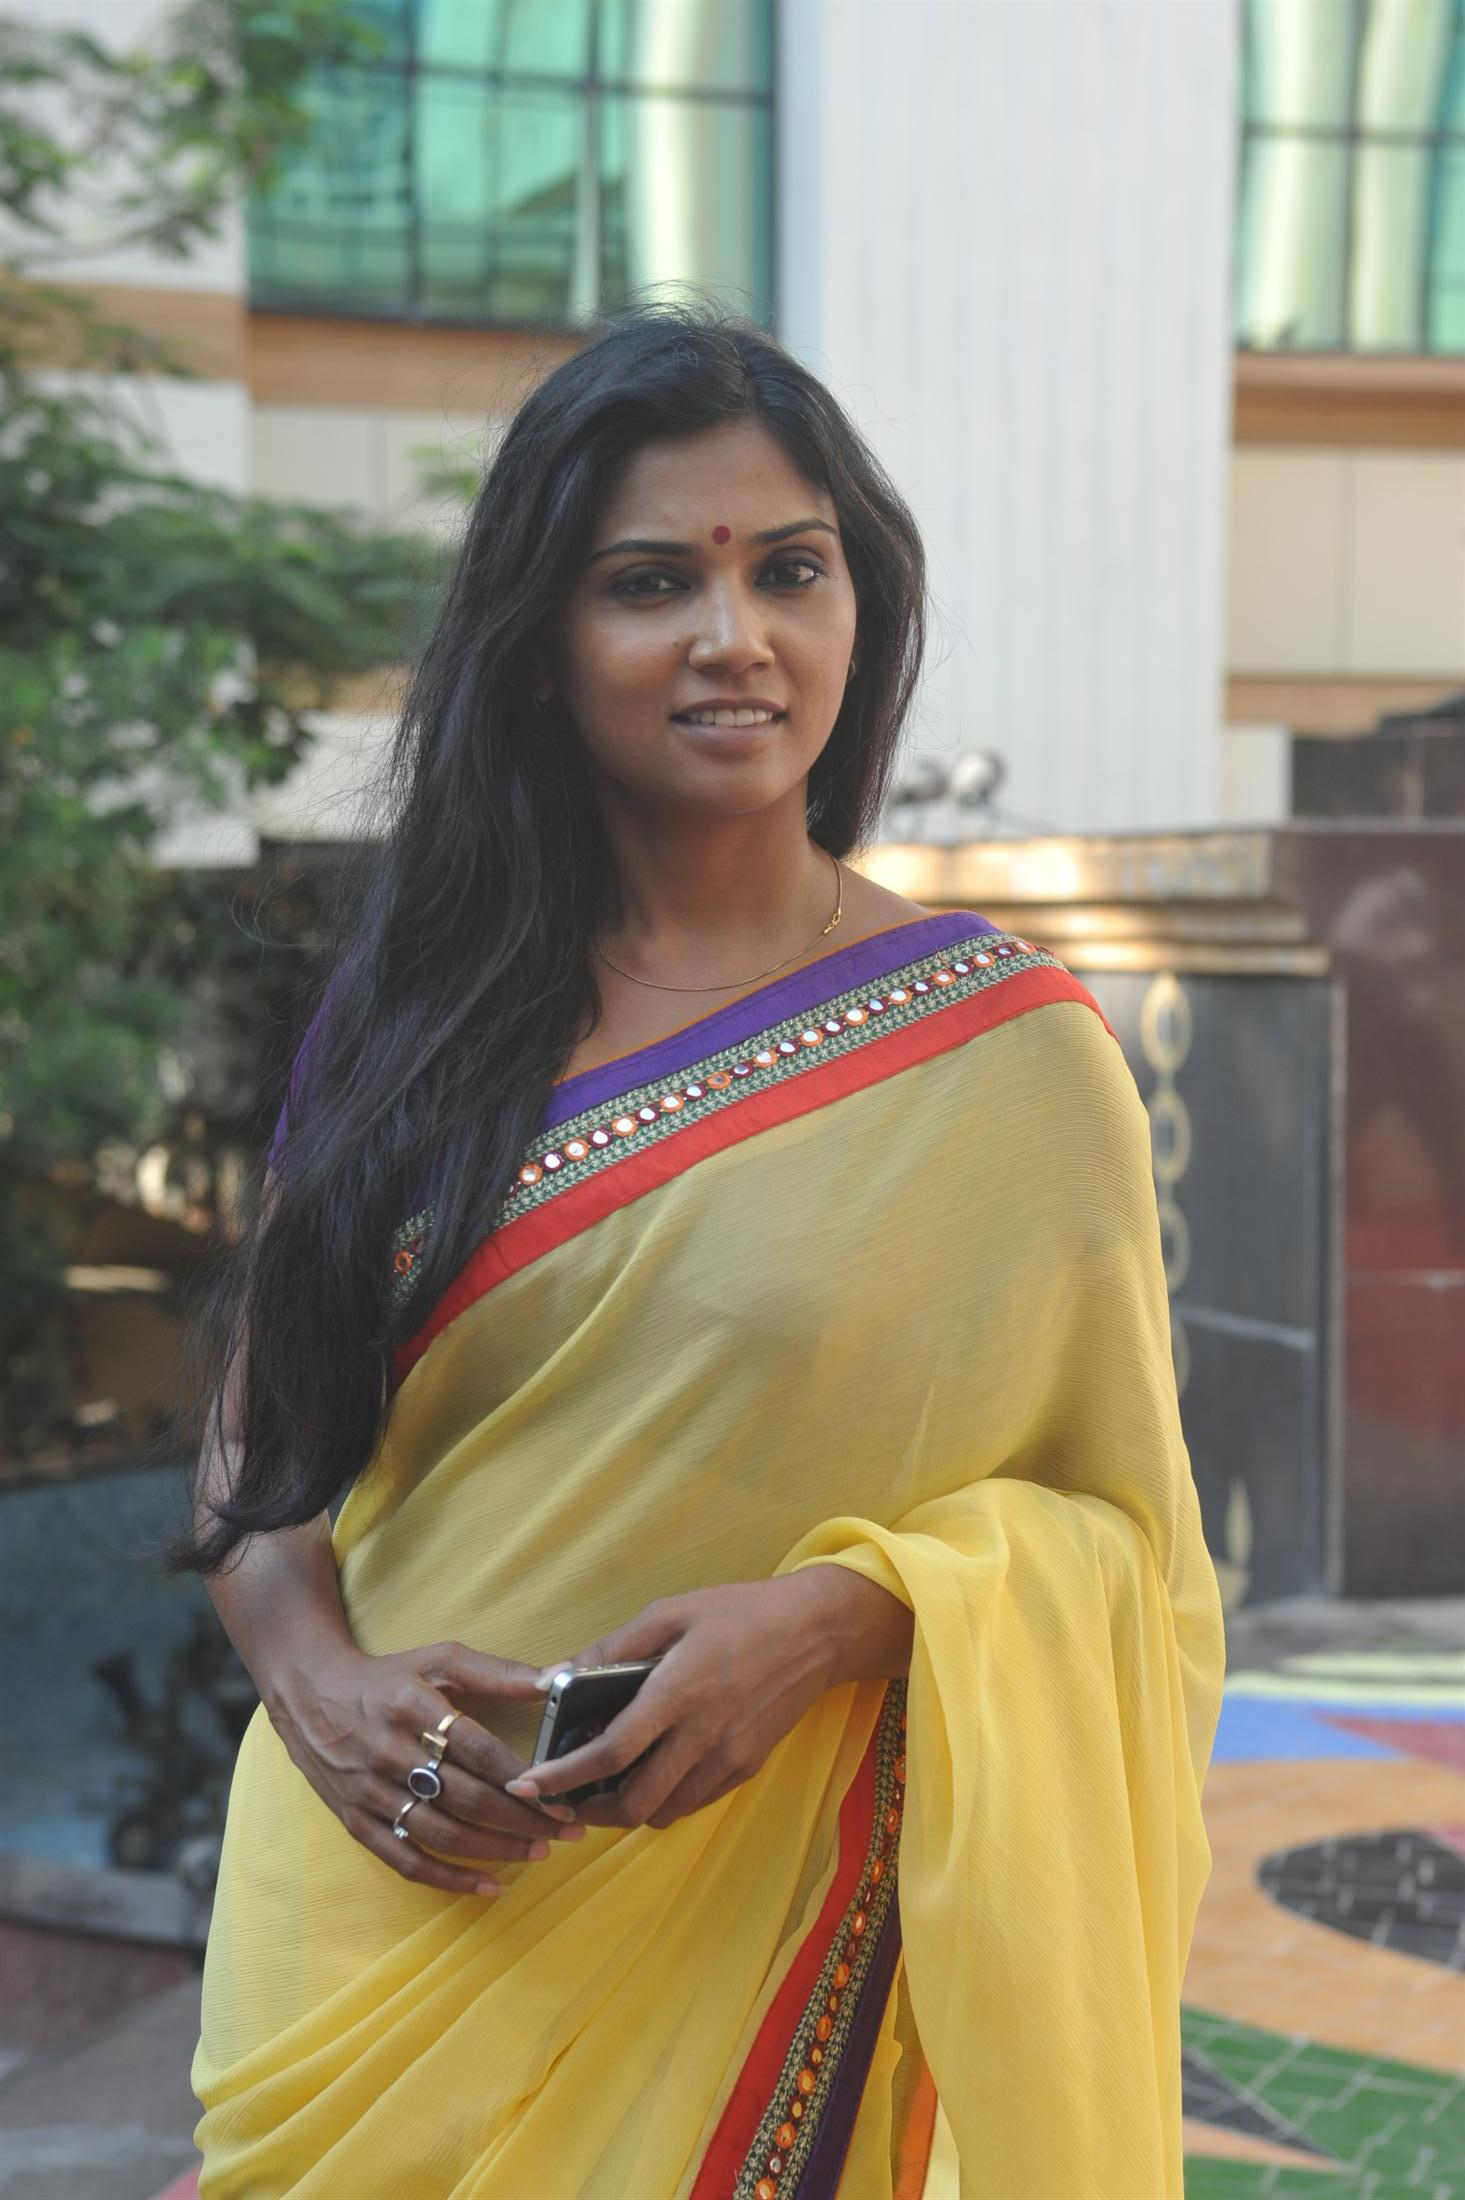 Usha Jadhav in plain saree